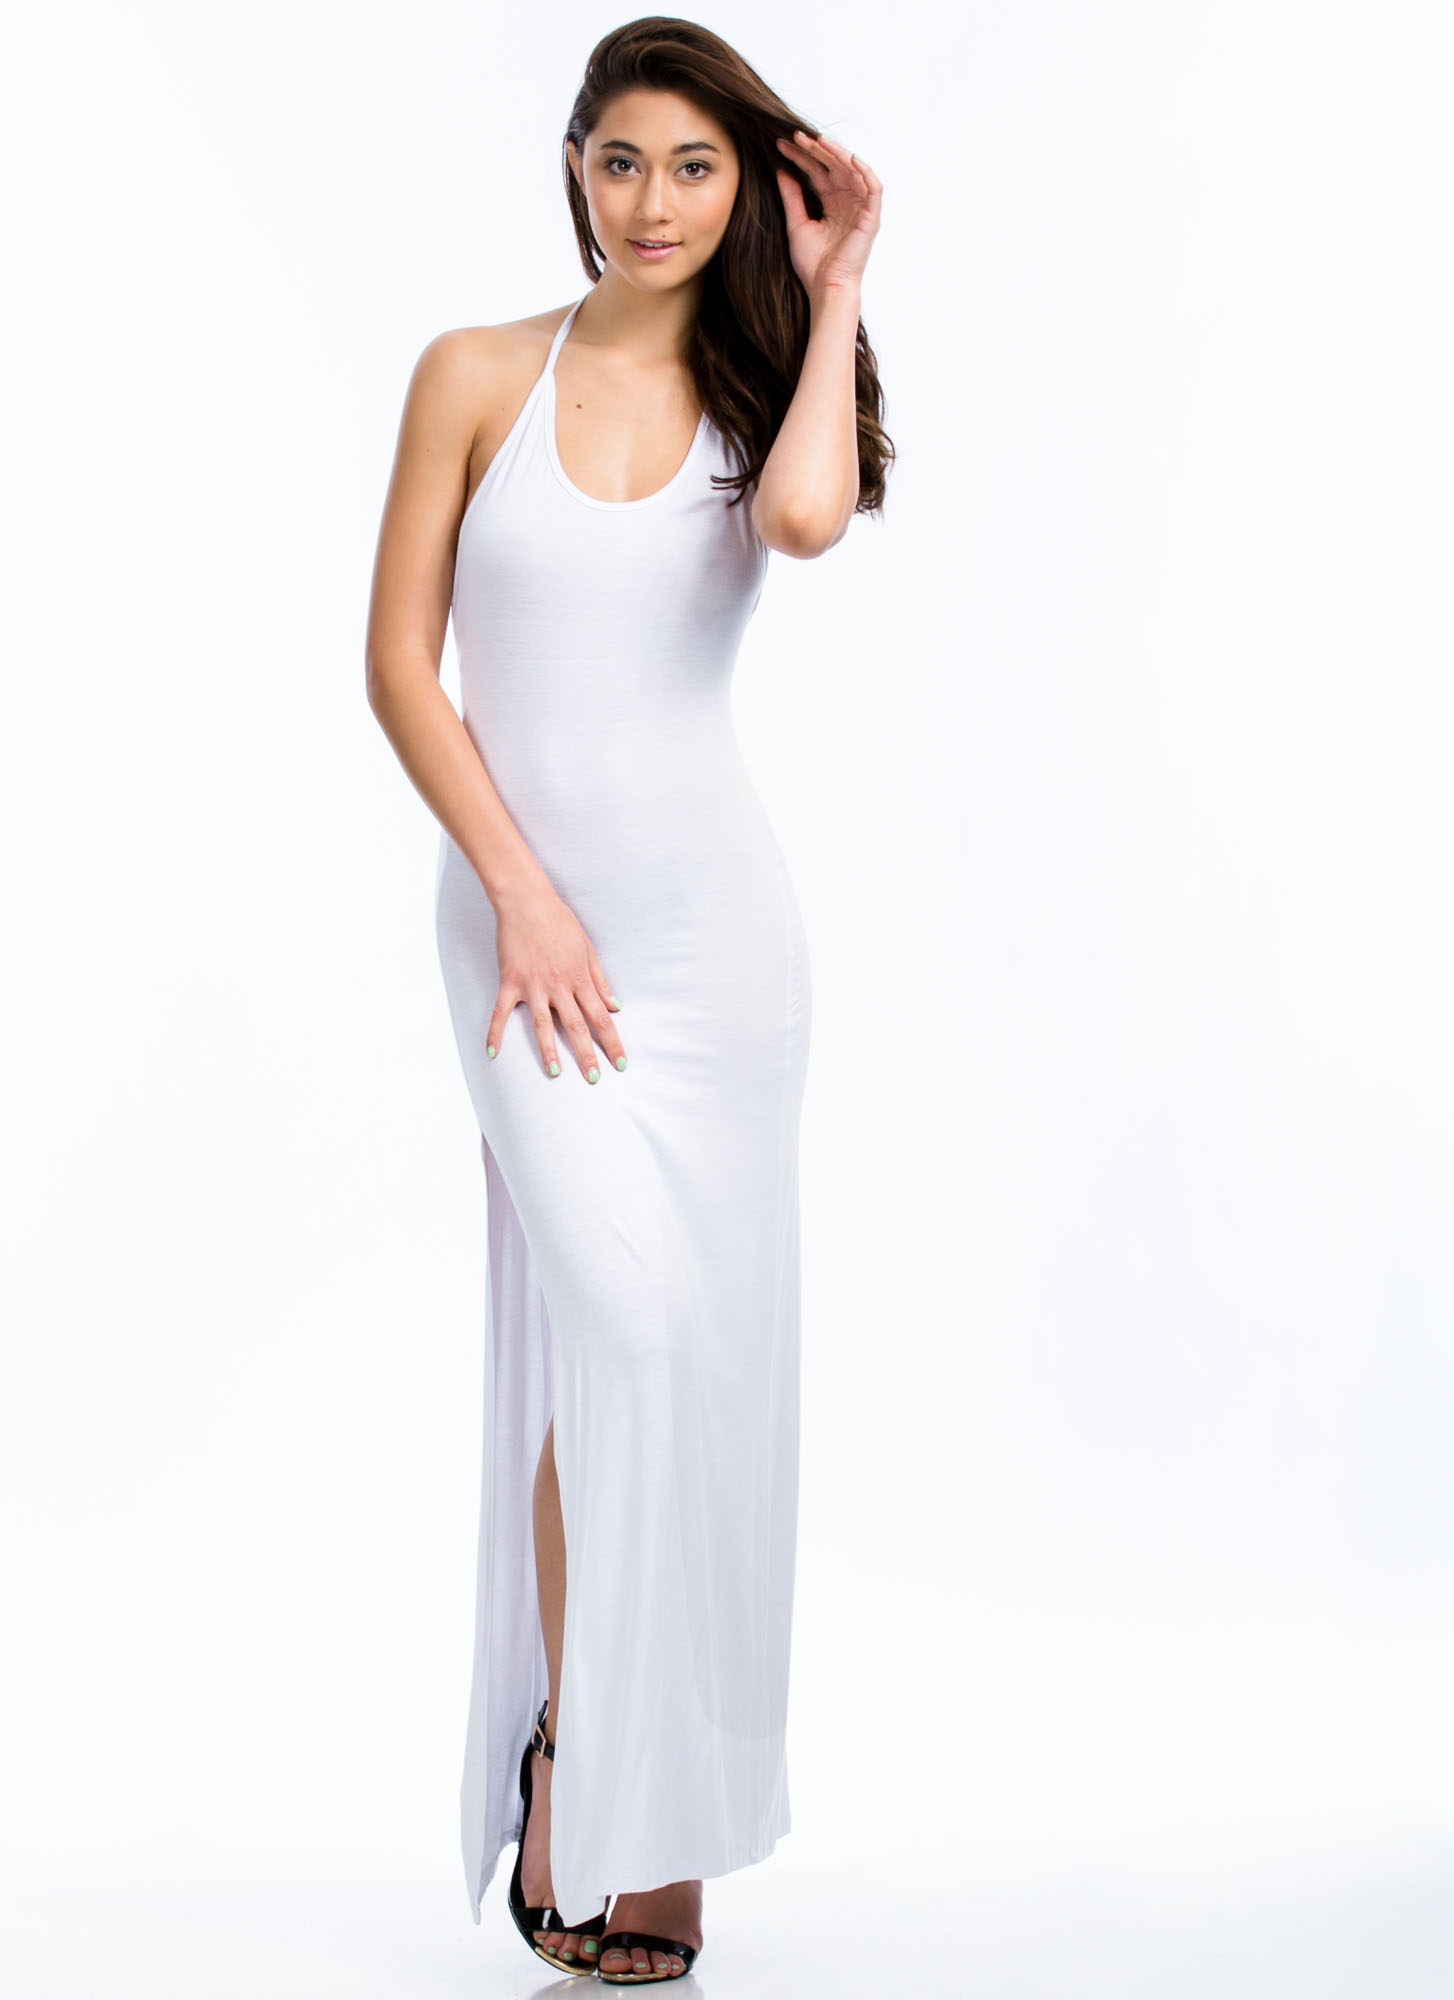 Will Beg 4 Leg Halter Maxi Dress WHITE